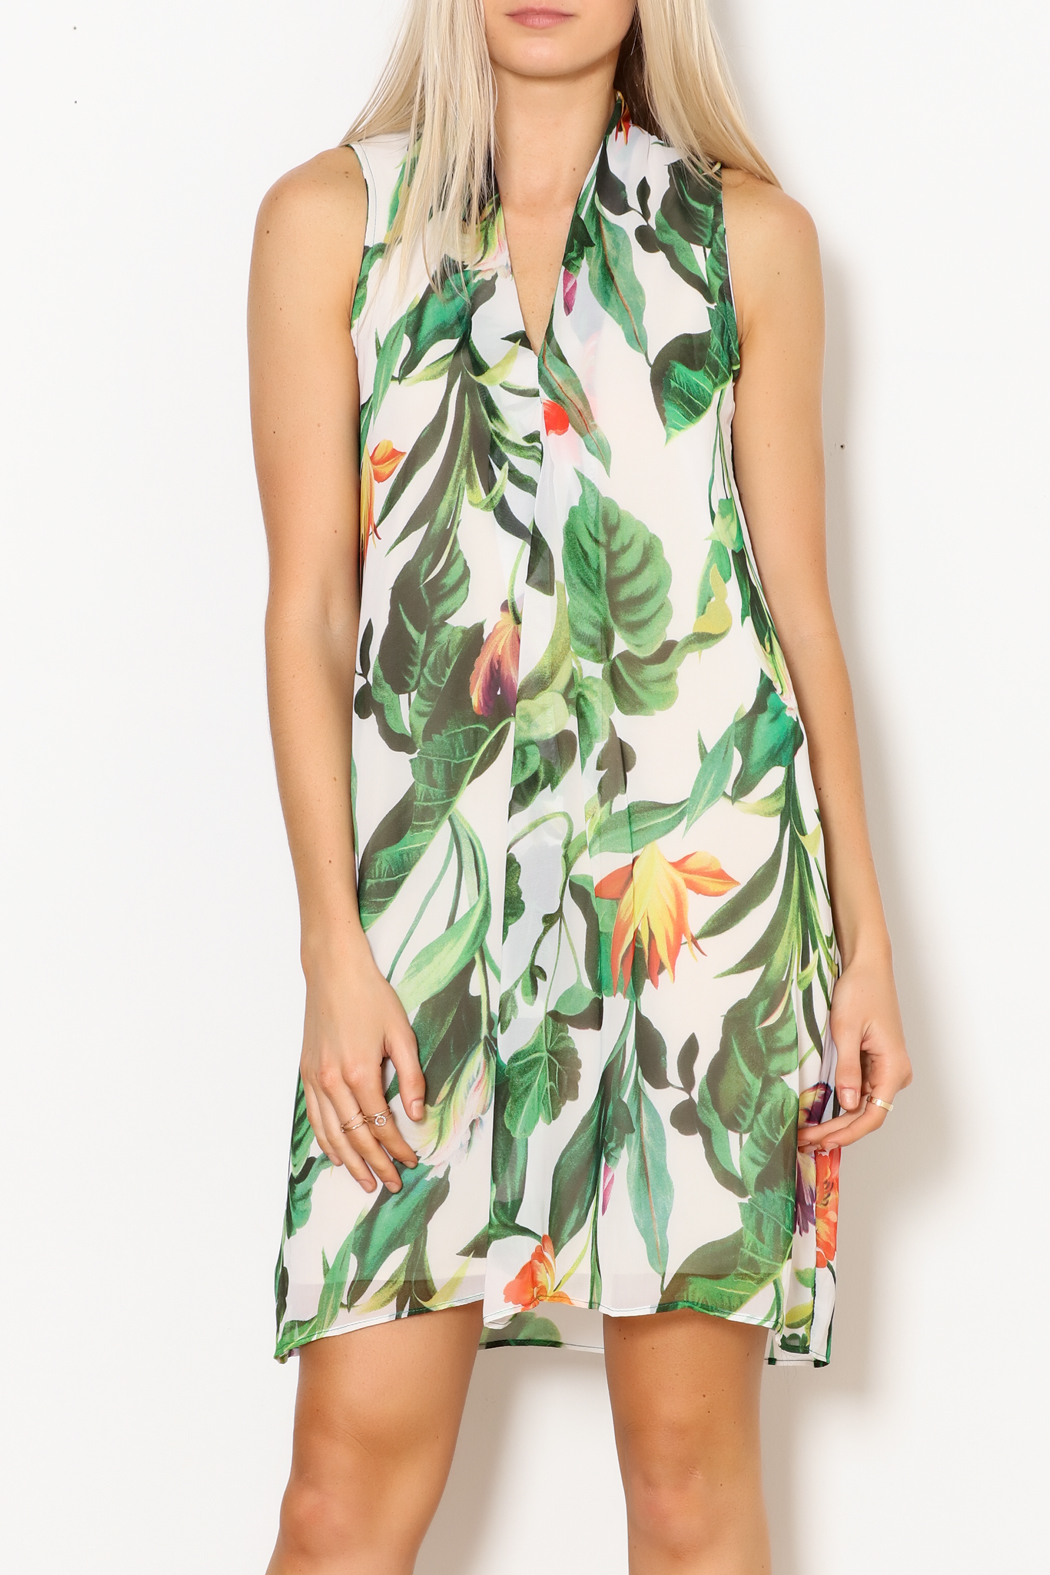 Kay Celine Tayah Multi-Colored Dress - Front Full Image